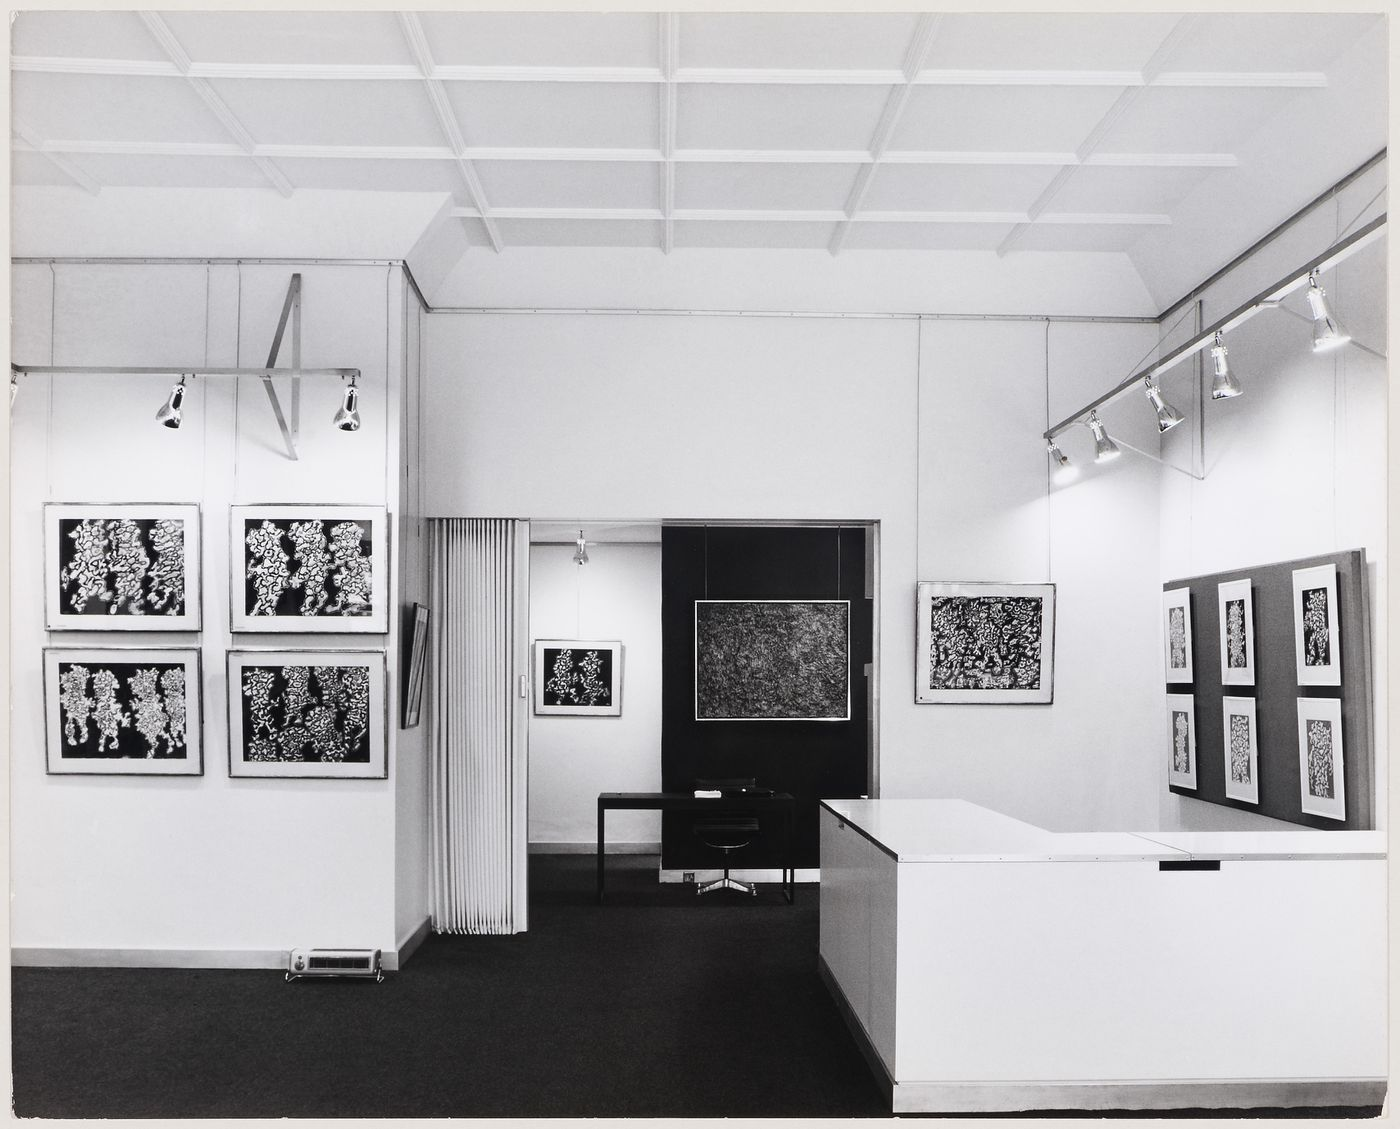 Interior view of Robert Fraser Gallery, London, England